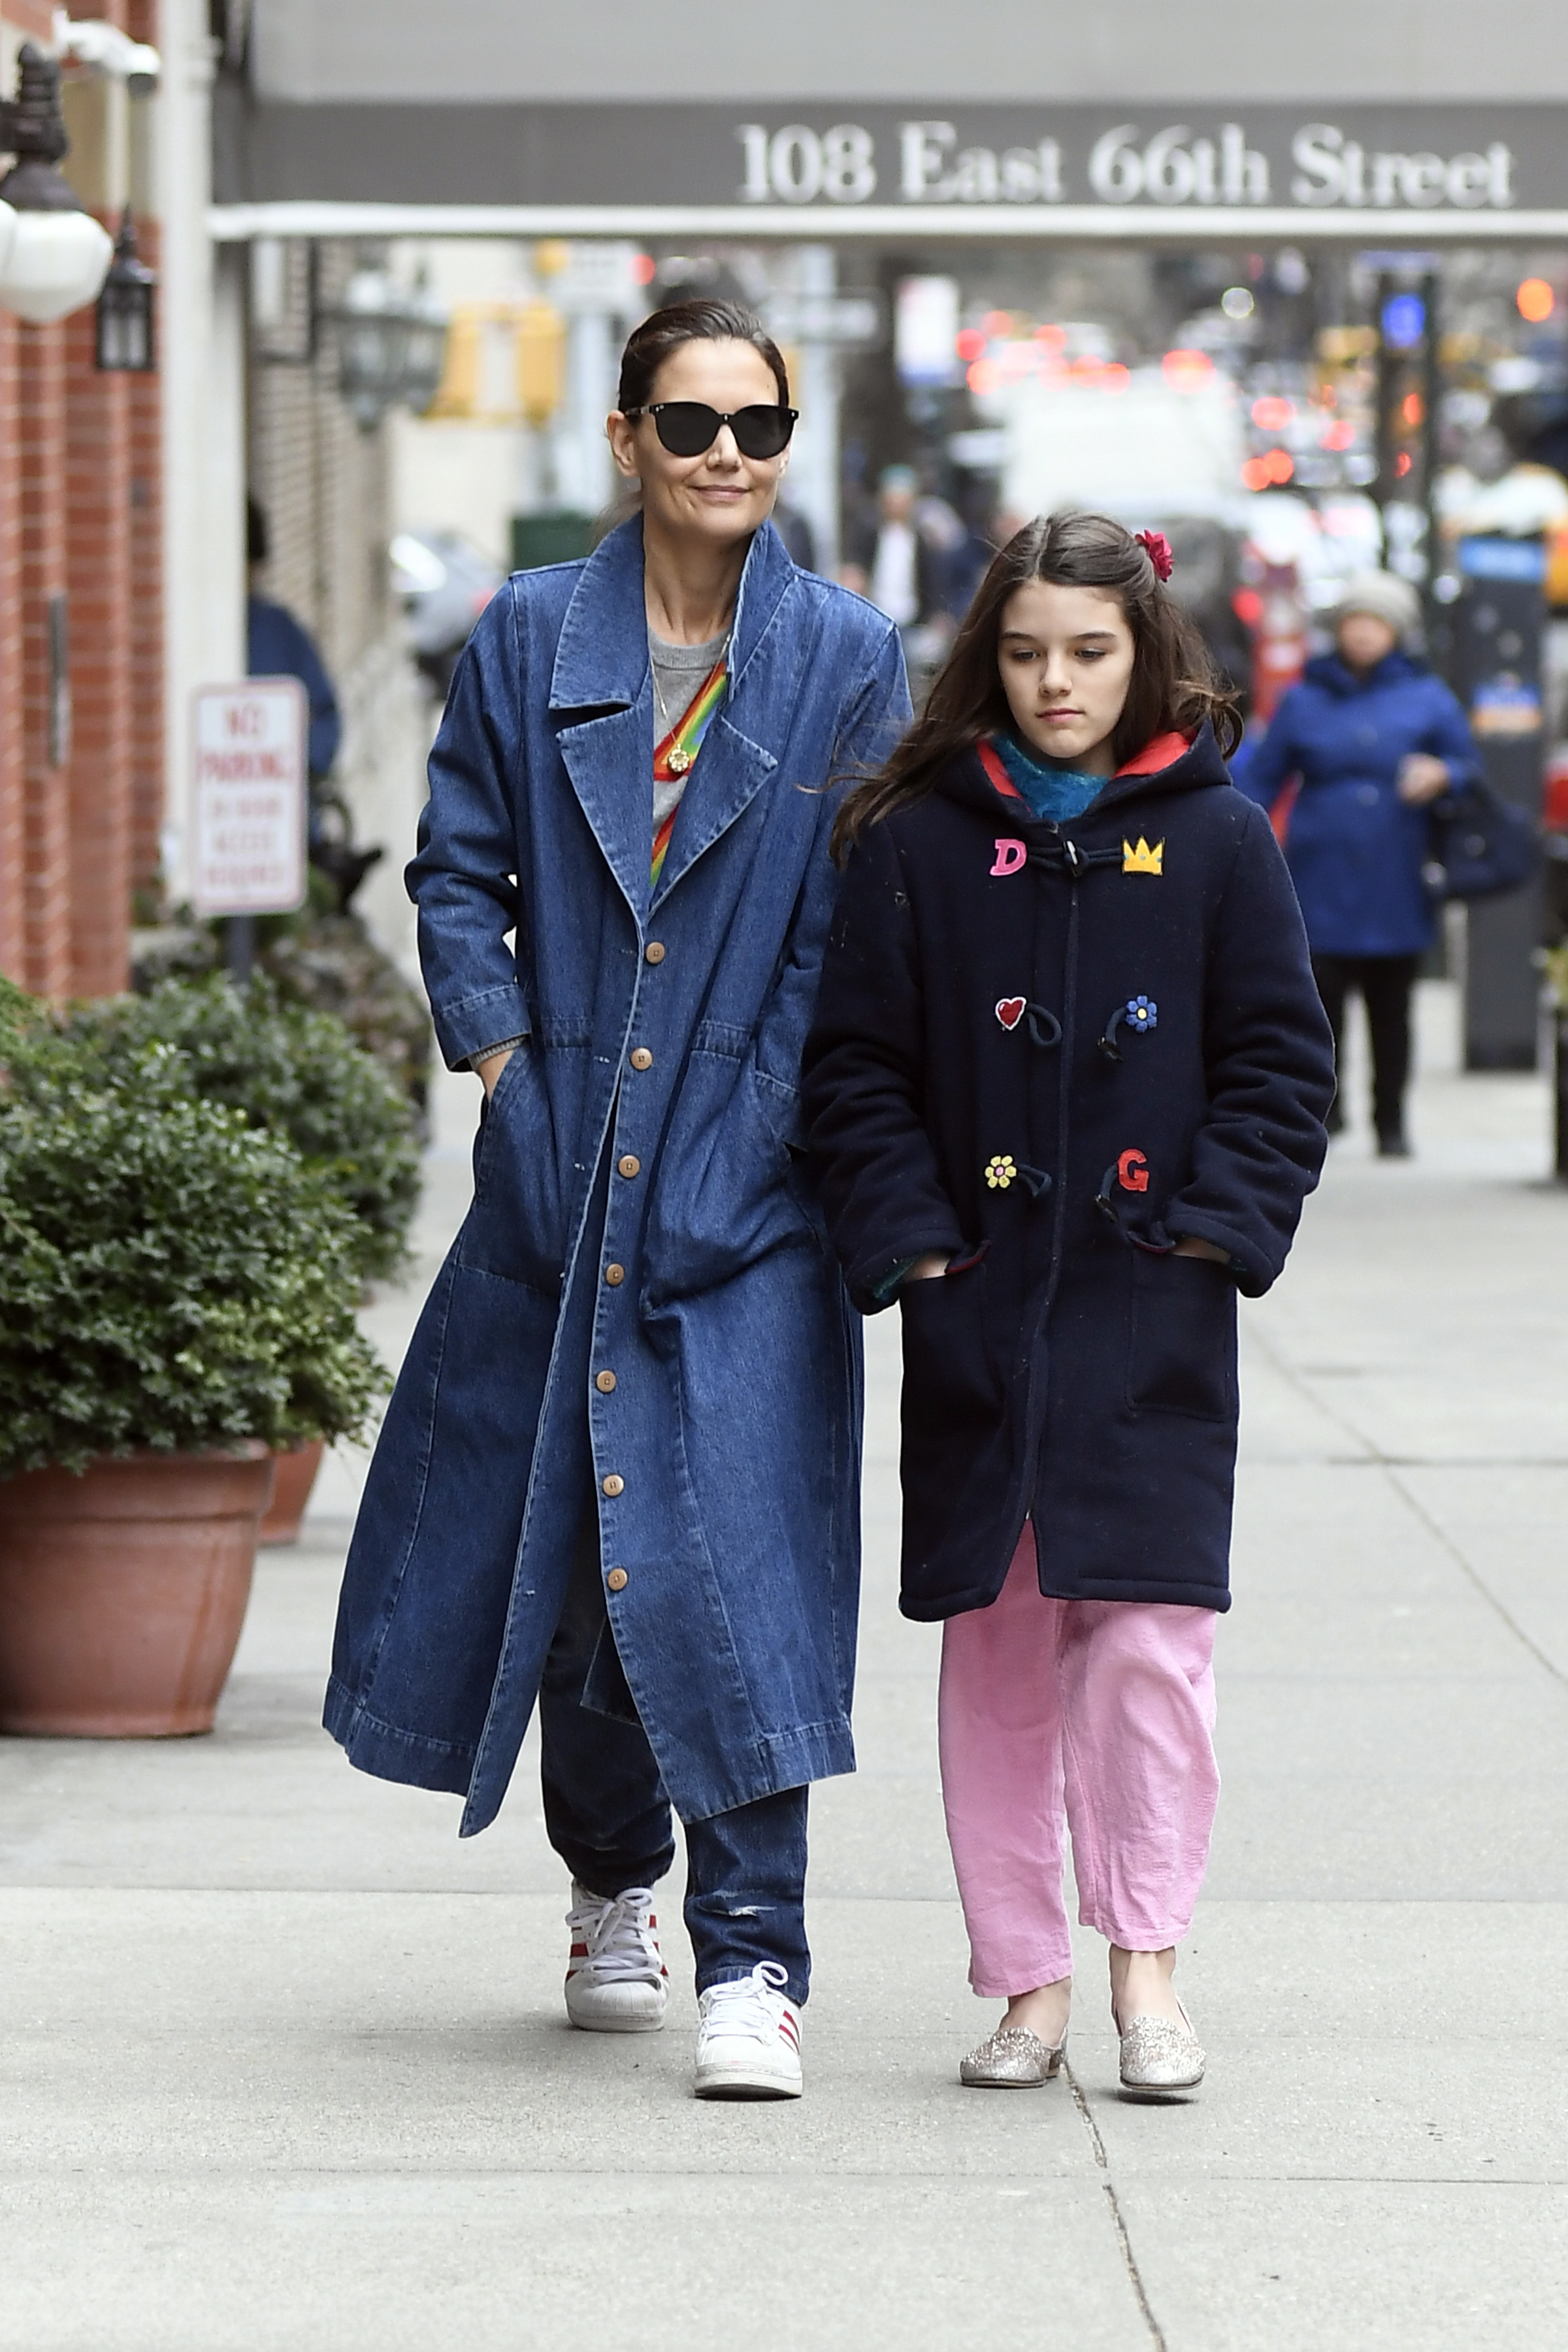 Katie Holmes and Suri Cruise were spotted out running errands in New York City on March 15, 2019.